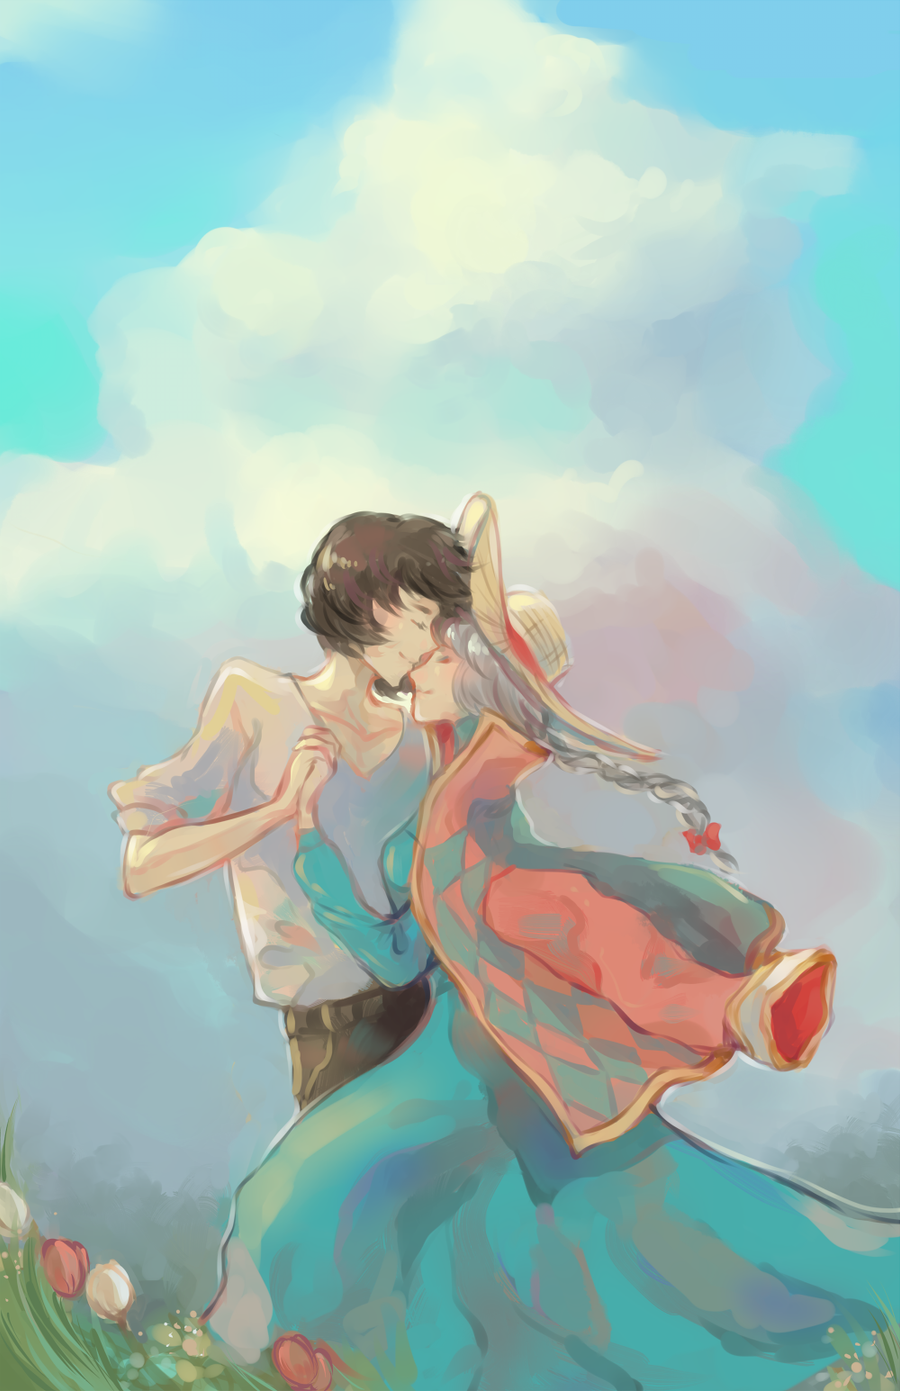 howl and sophie by chocuu on DeviantArt